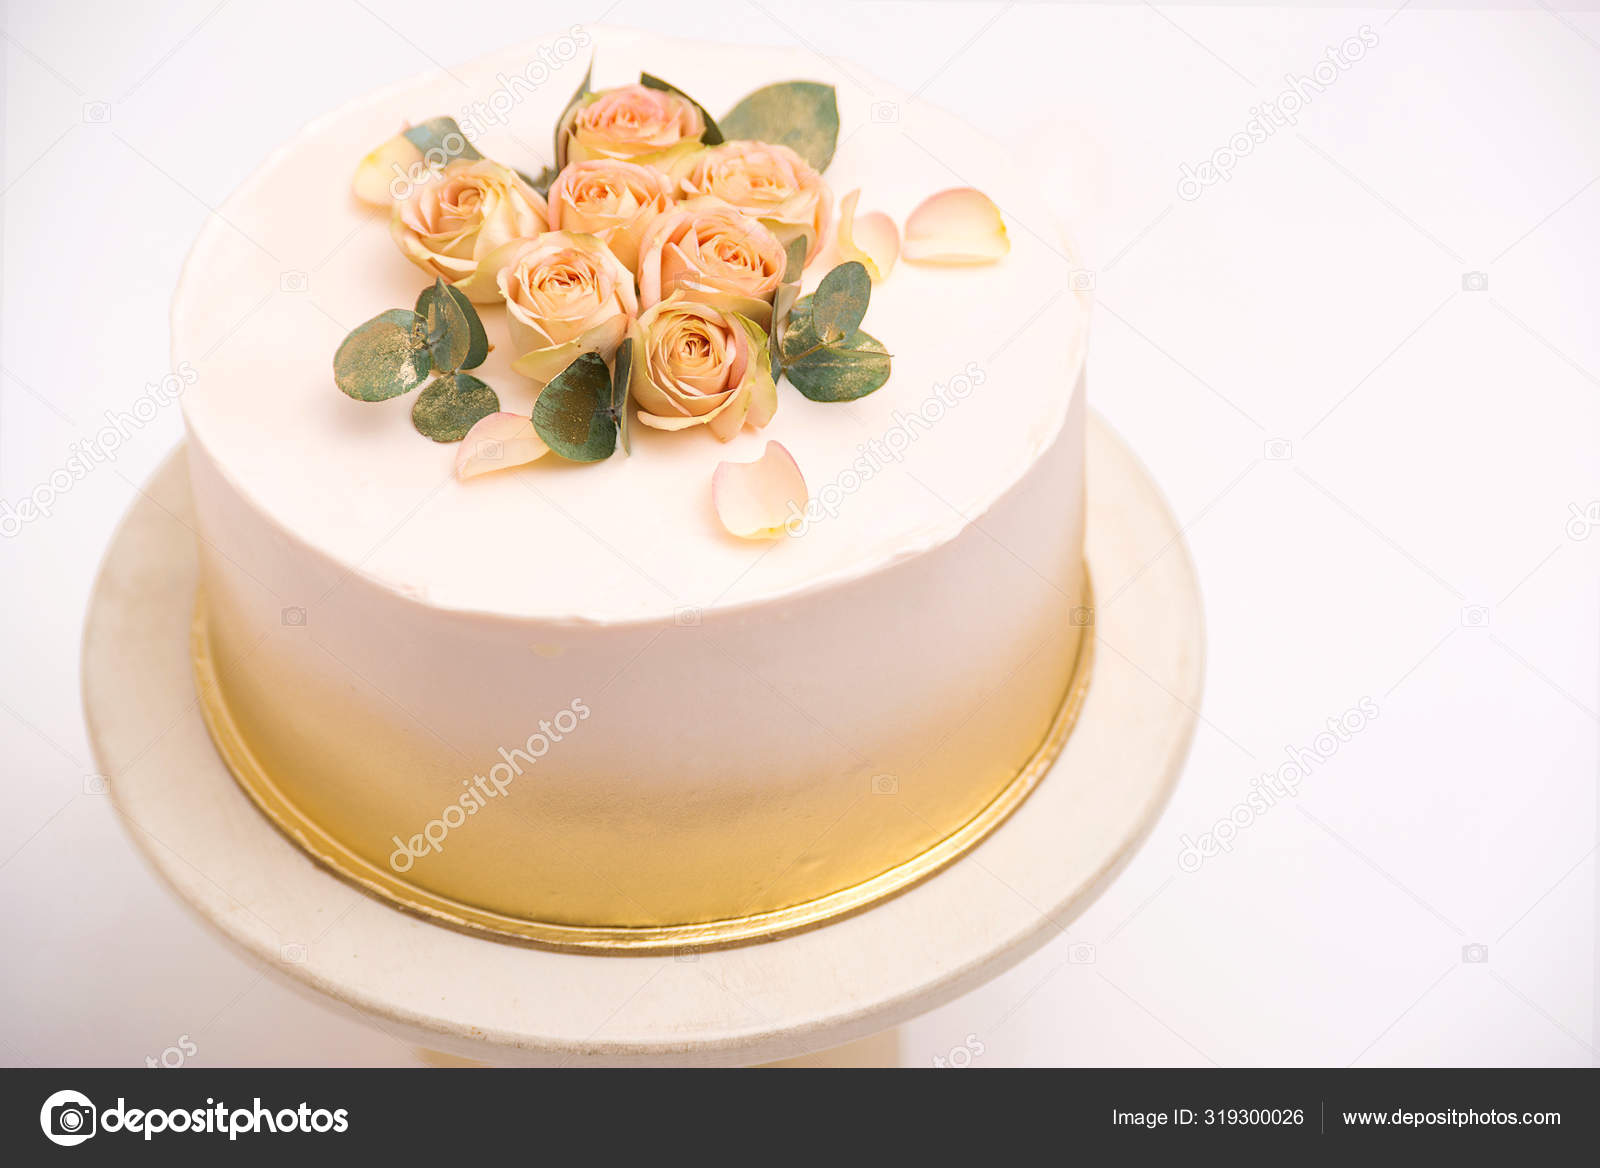 Outstanding Elegant Wedding Cake With Beautiful Roses Flowers On White Table Funny Birthday Cards Online Inifofree Goldxyz